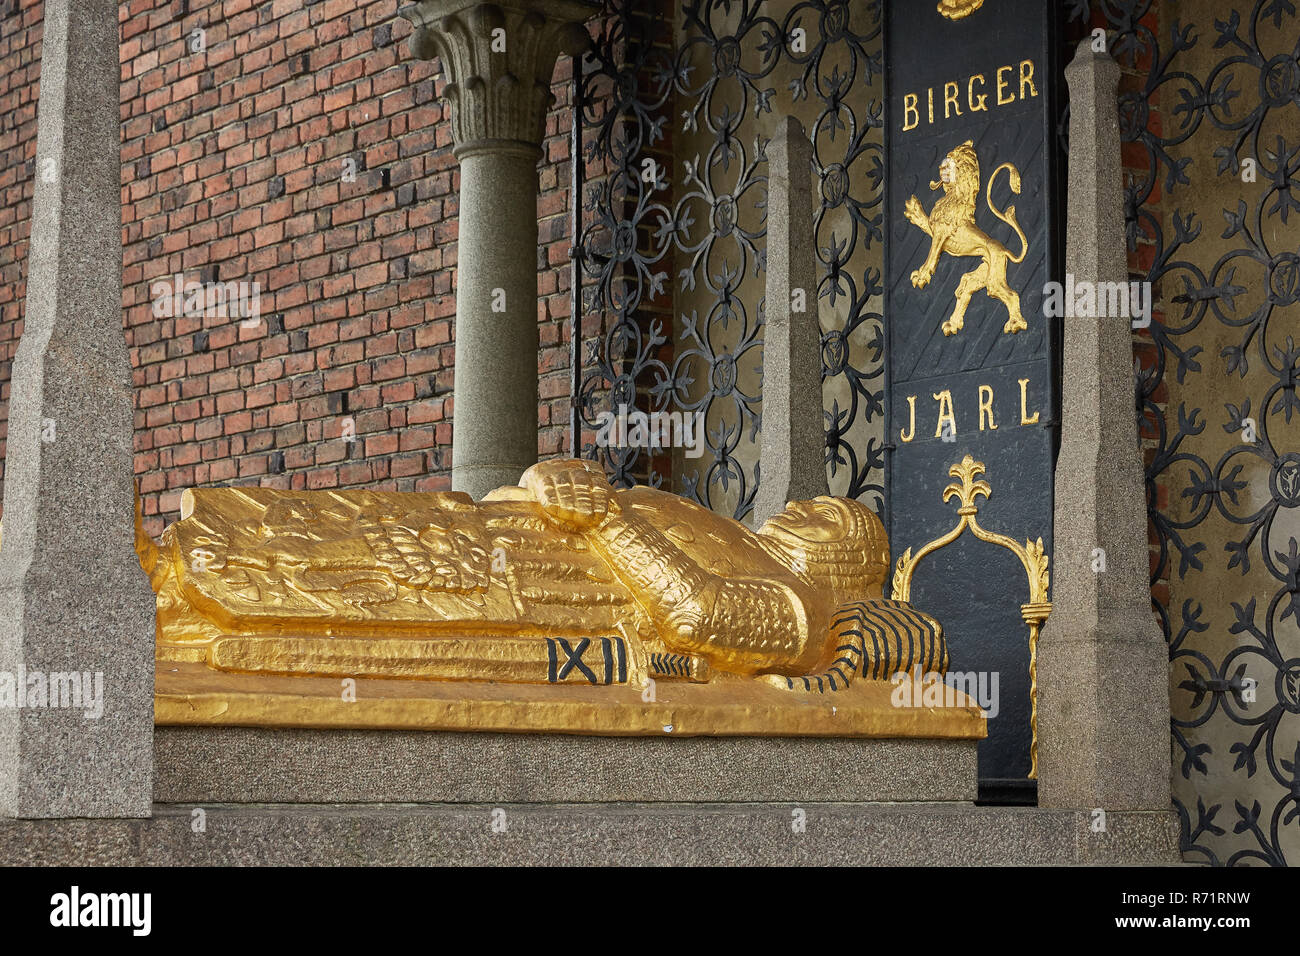 Tomb of Birger Magnusson, who founded Stockholm in the 13th century at Stadshuset - Stock Image